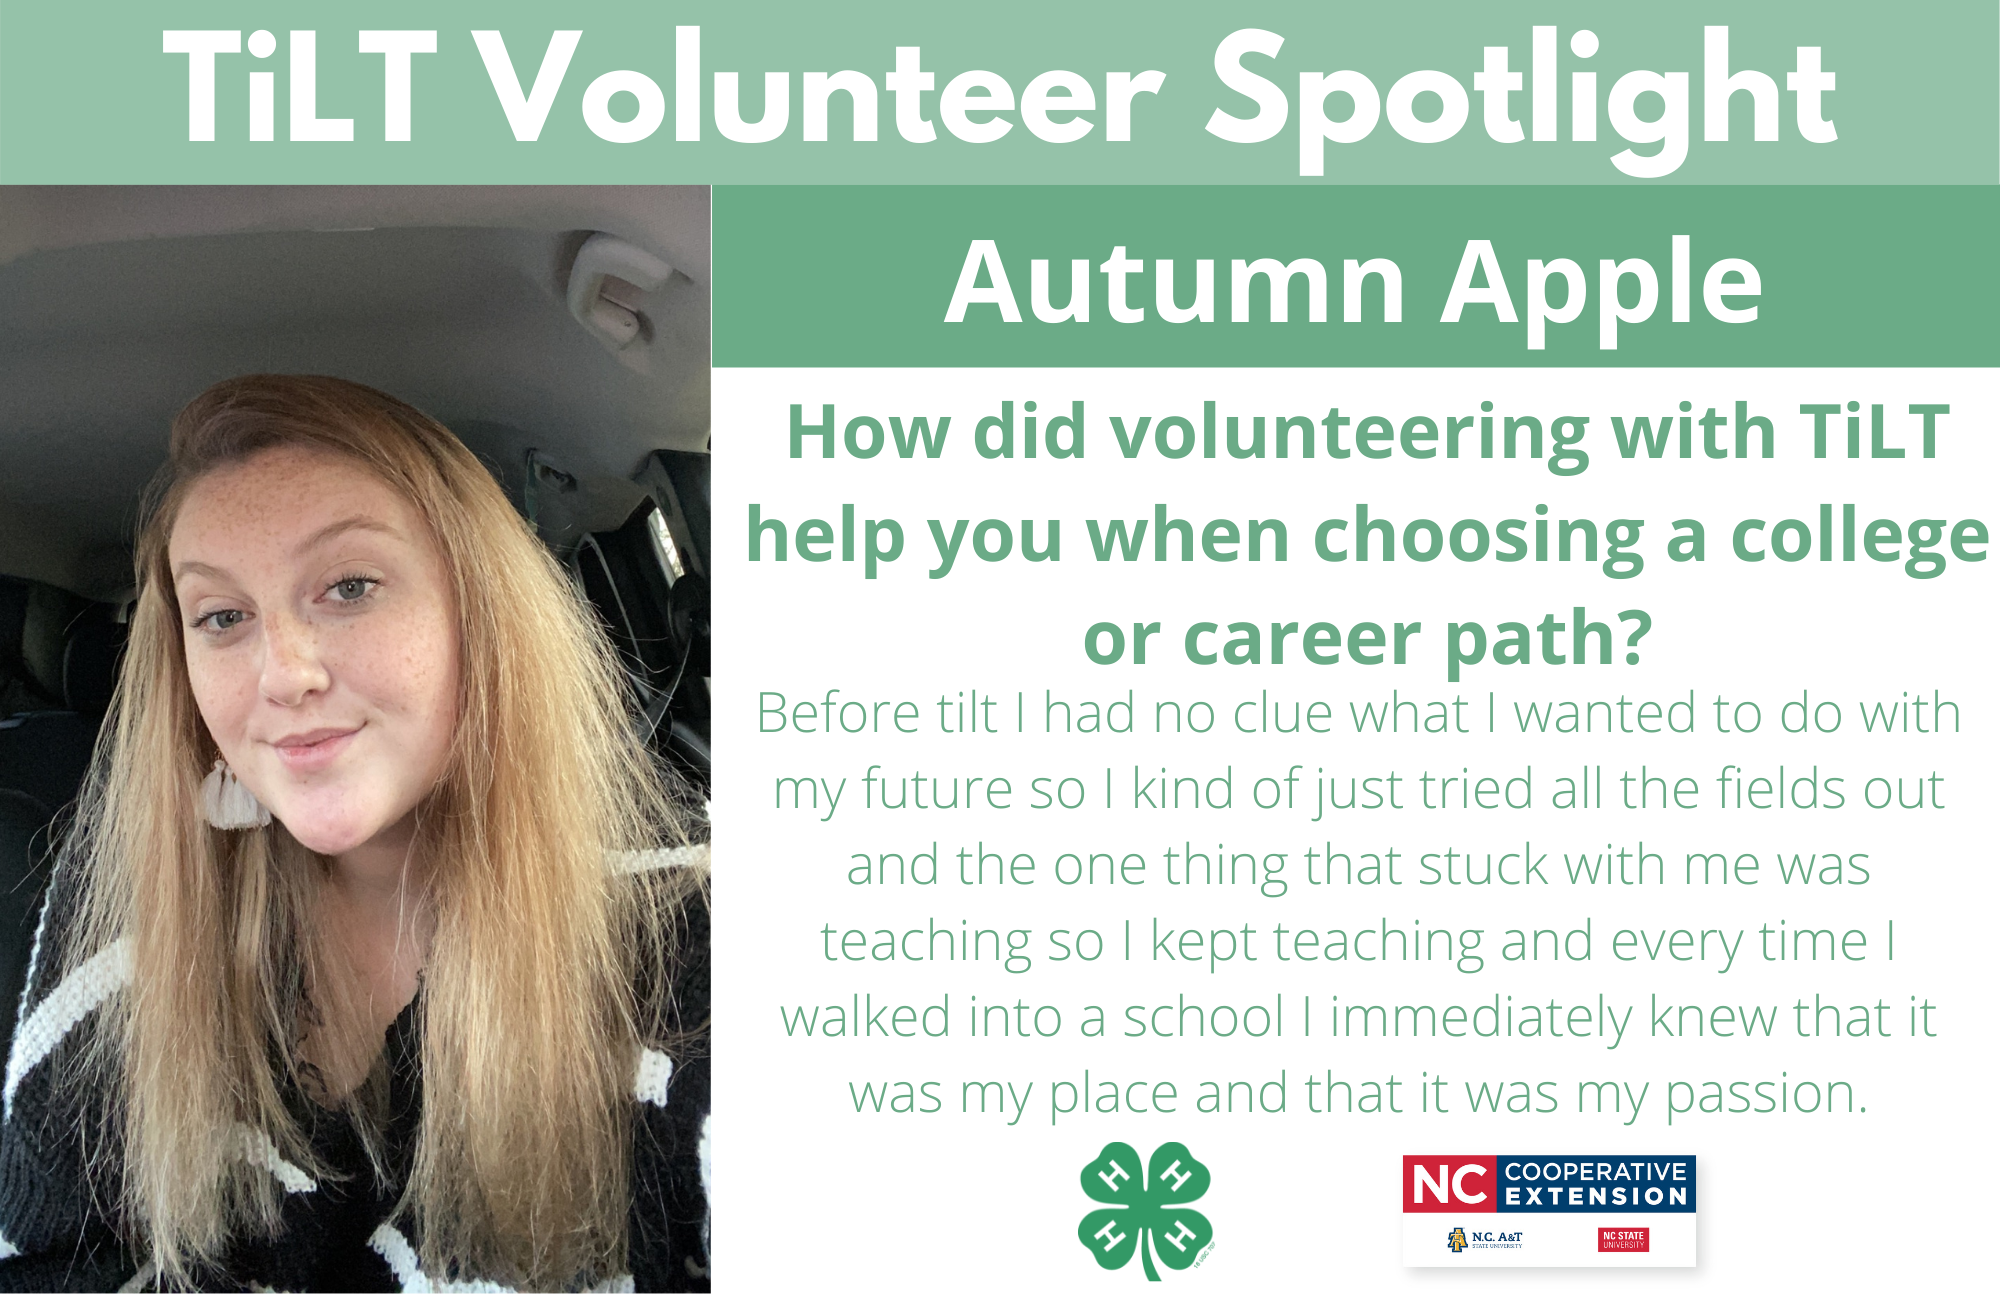 Headshot of Autumn Apple with following text to the right of image. TiLT Volunteer Spotlight. Sydney Blair. How did volunteering with TiLT help you when choosing a college or career path? Before tilt I had no clue what I wanted to do with my future so I kind of just tried all the fields out and the one thing that stuck with me was teaching so I kept teaching and every time I walked into a school I immediately knew that it was my place and that it was my passion.